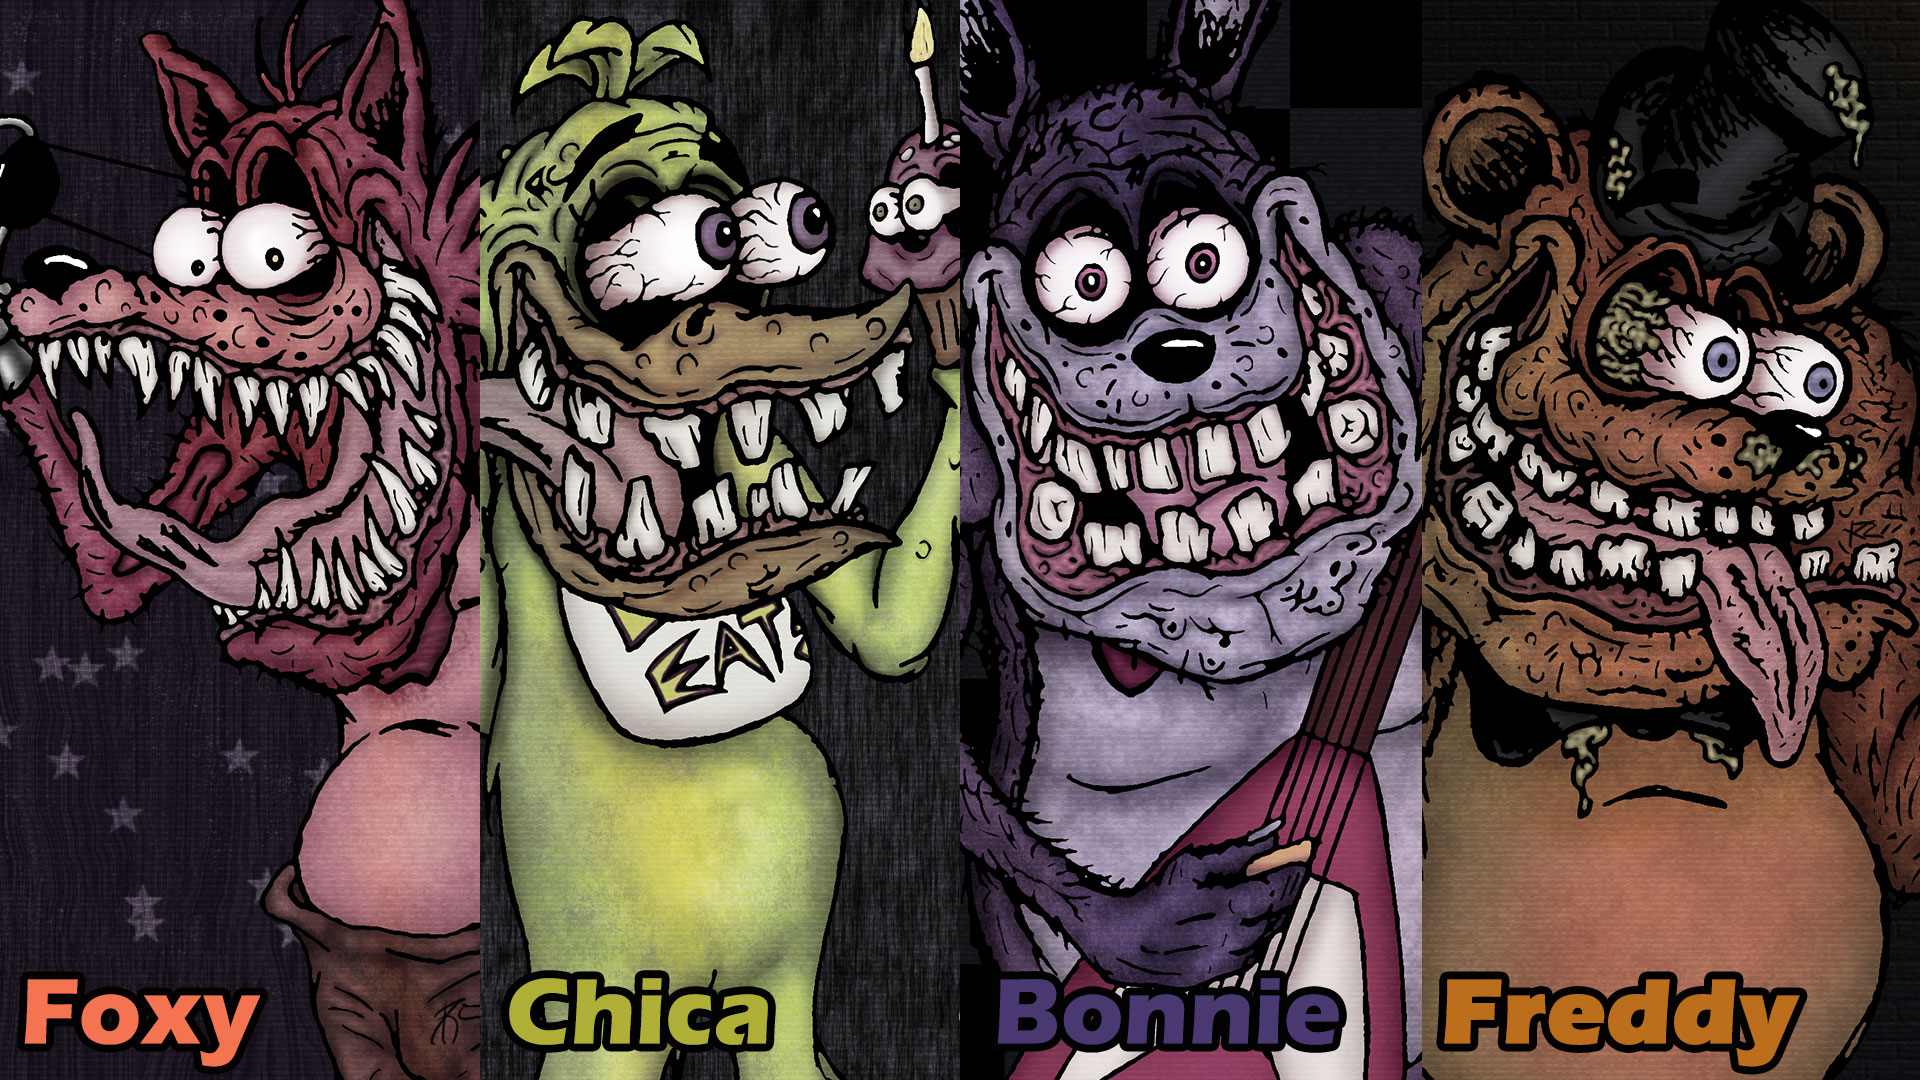 five nights at freddy - ed roth style (wallpaper)sestrennk on